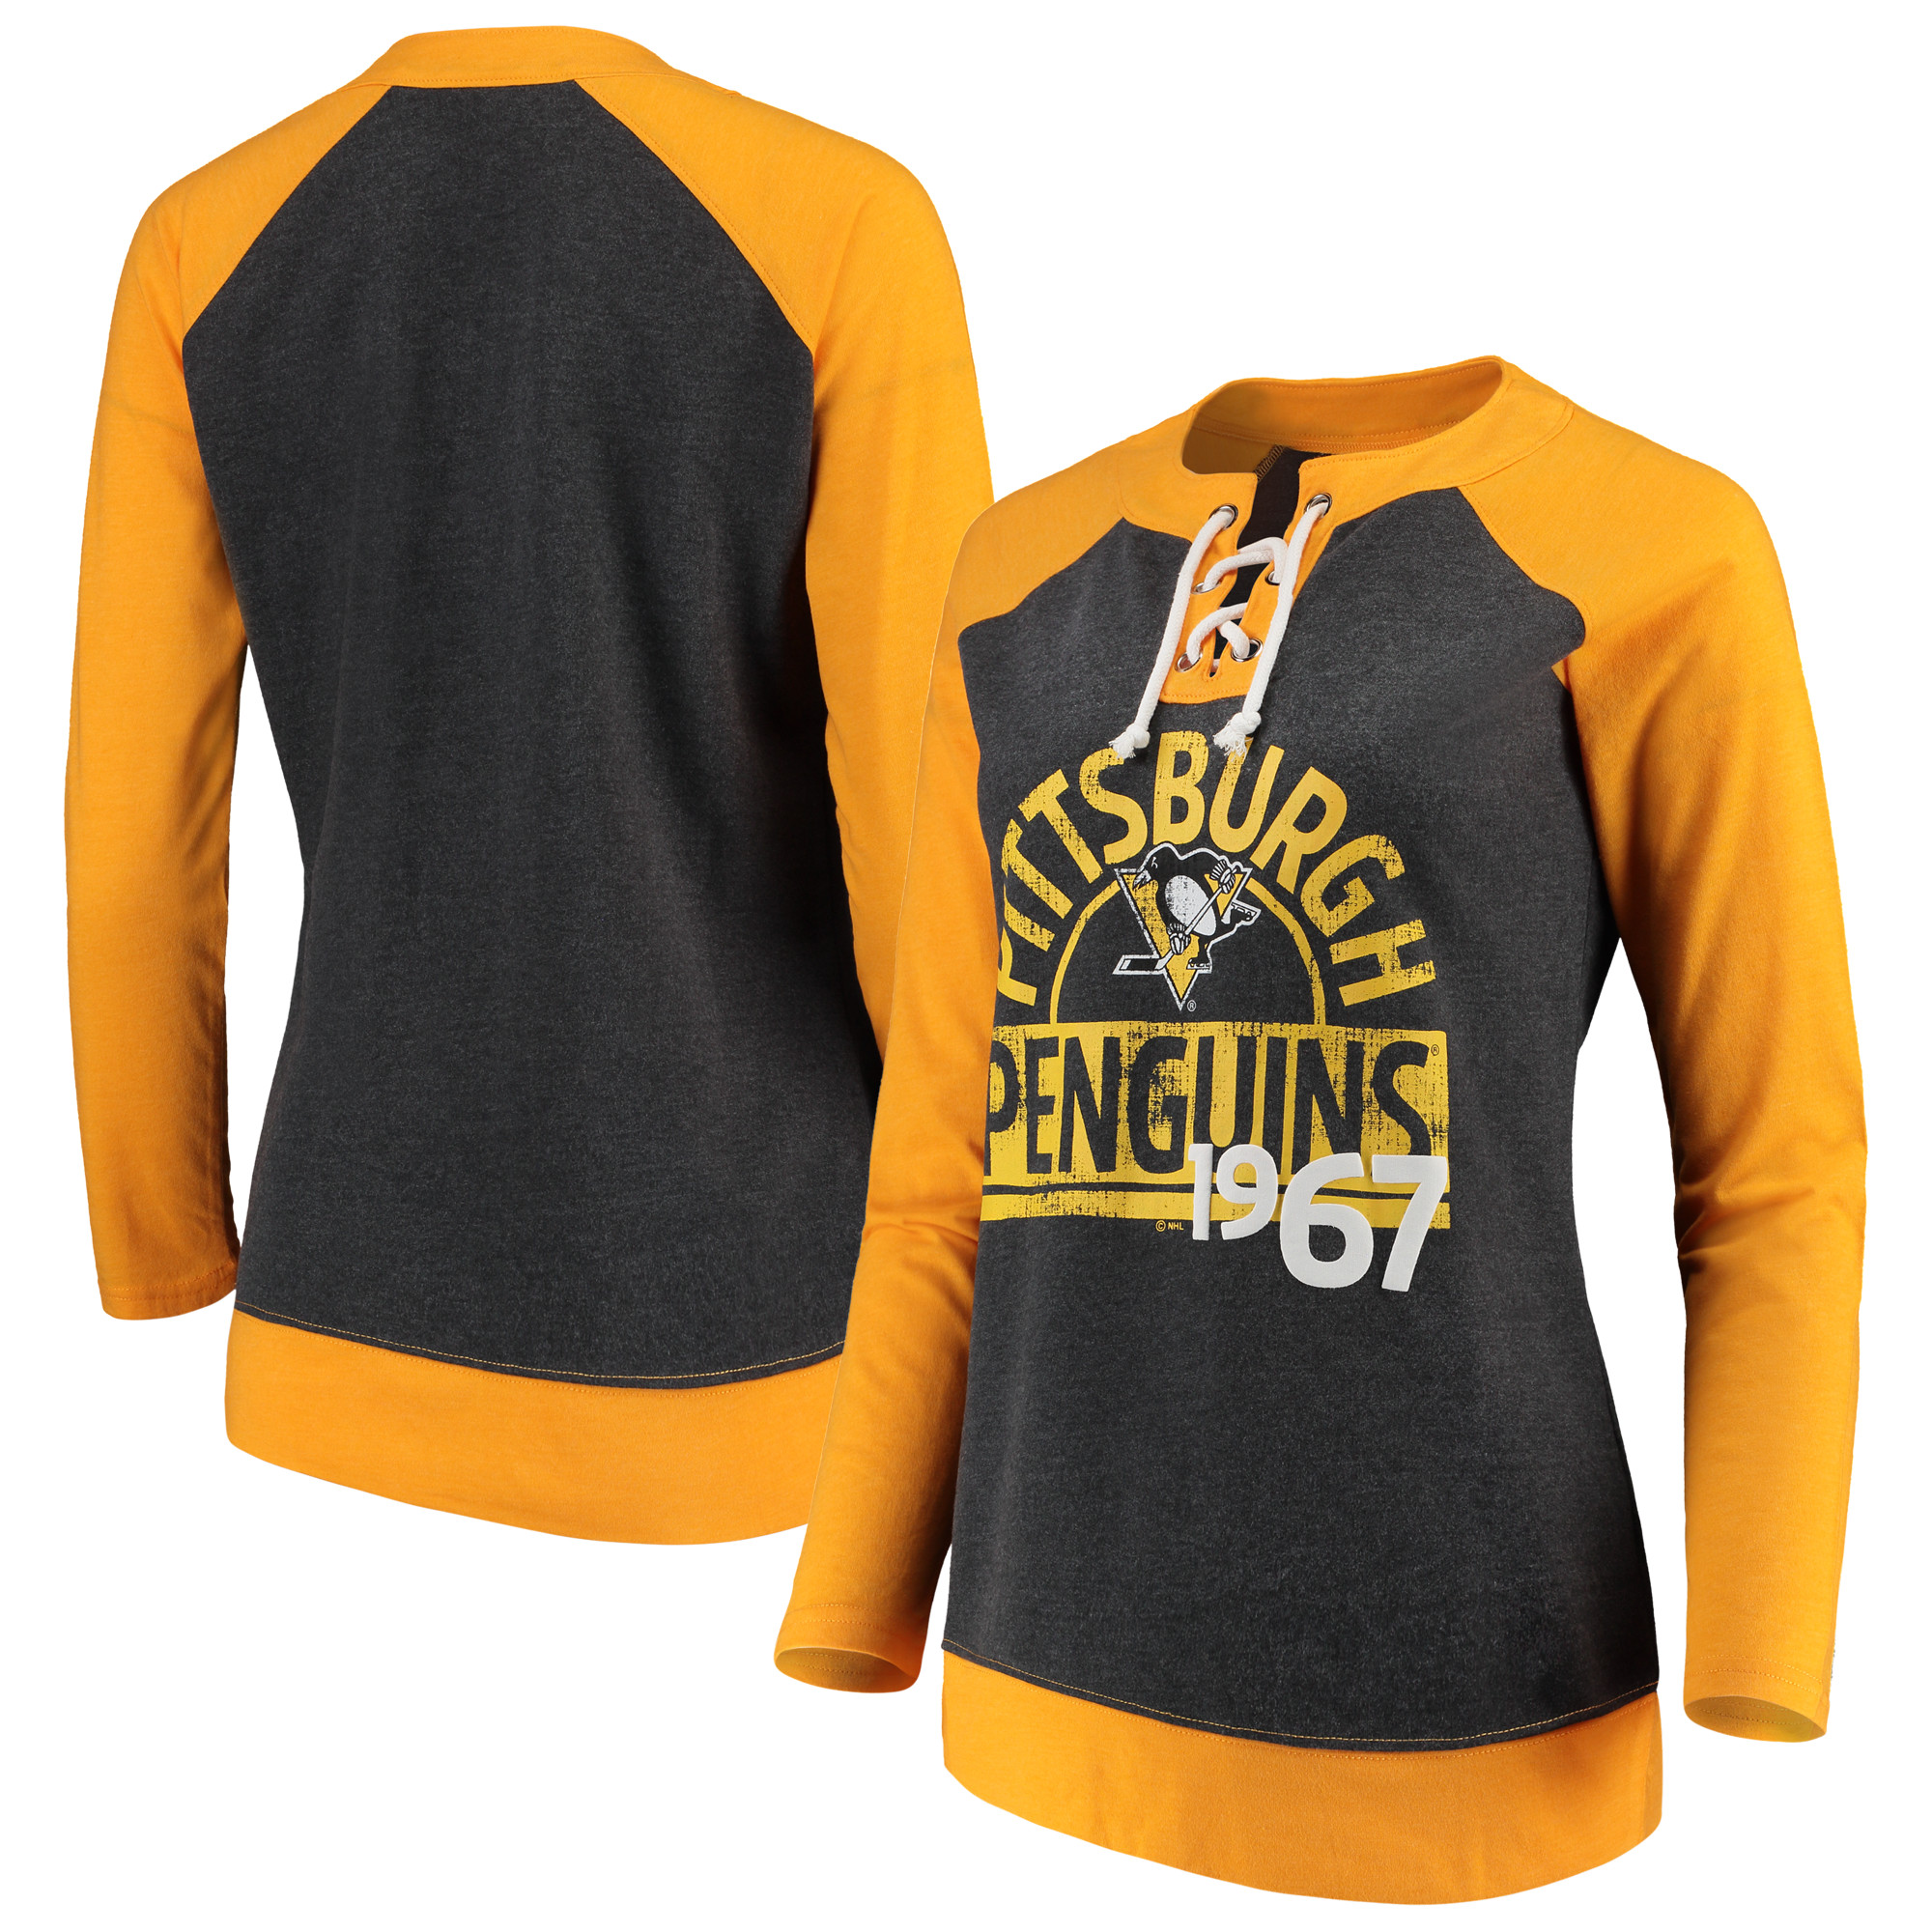 Women's Heathered Black Pittsburgh Penguins Lace-Up Long Sleeve T-Shirt by Knights Apparel INC